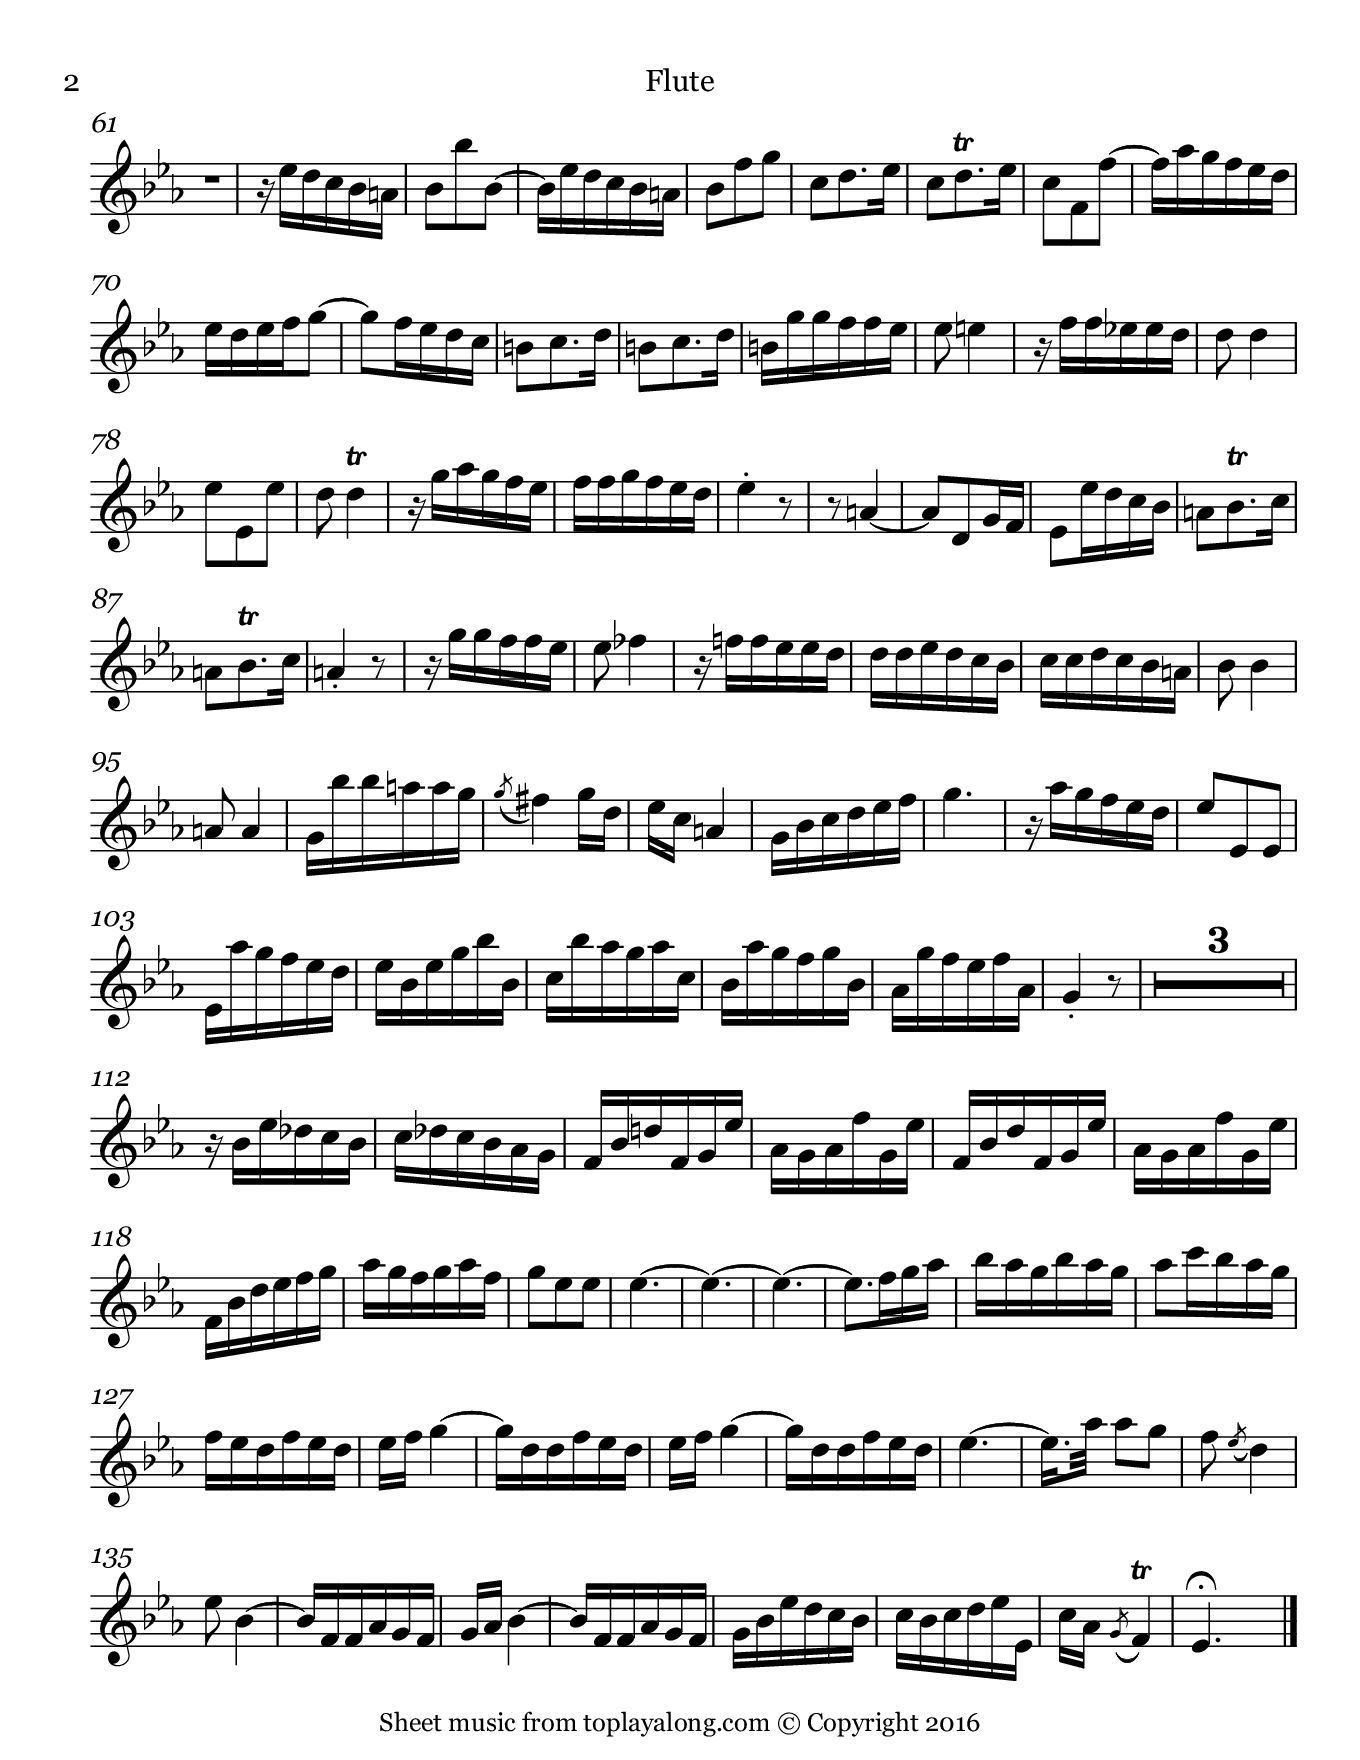 Flute Sonata BWV 1031 (III. Allegro) by J. S. Bach. Sheet music for Flute, page 2.